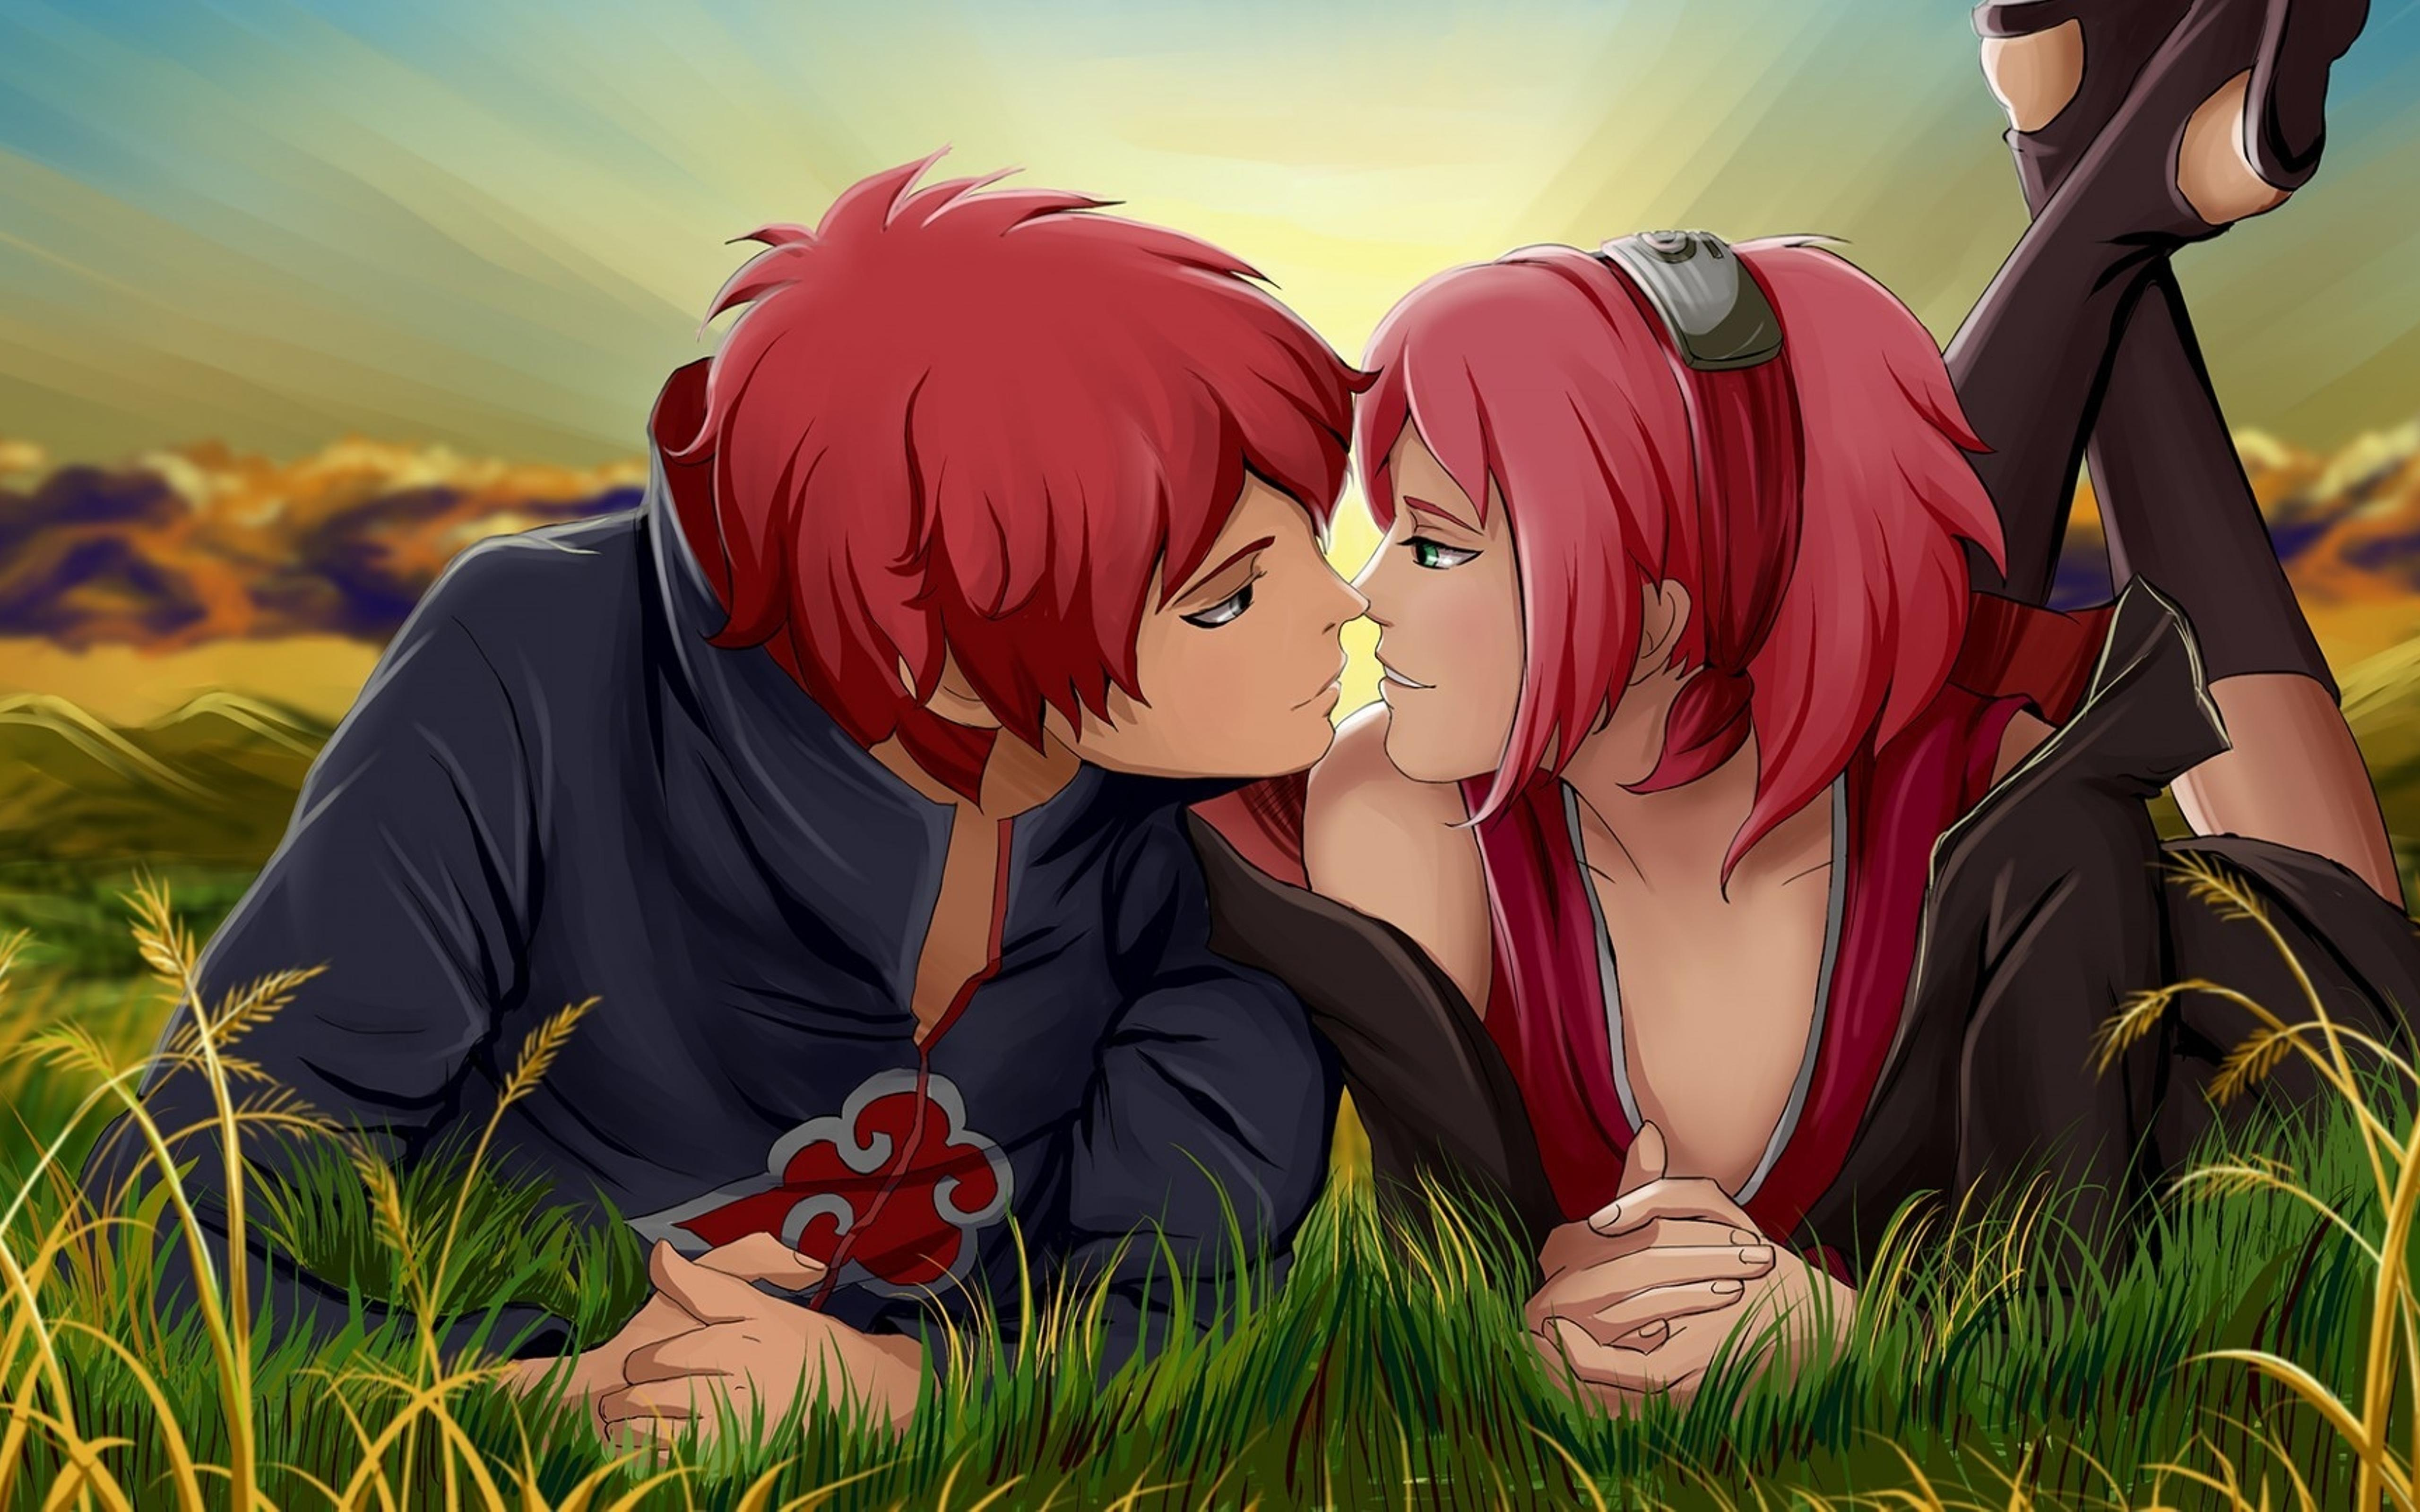 an anime couple with red hair kissing in the grass wallpaper